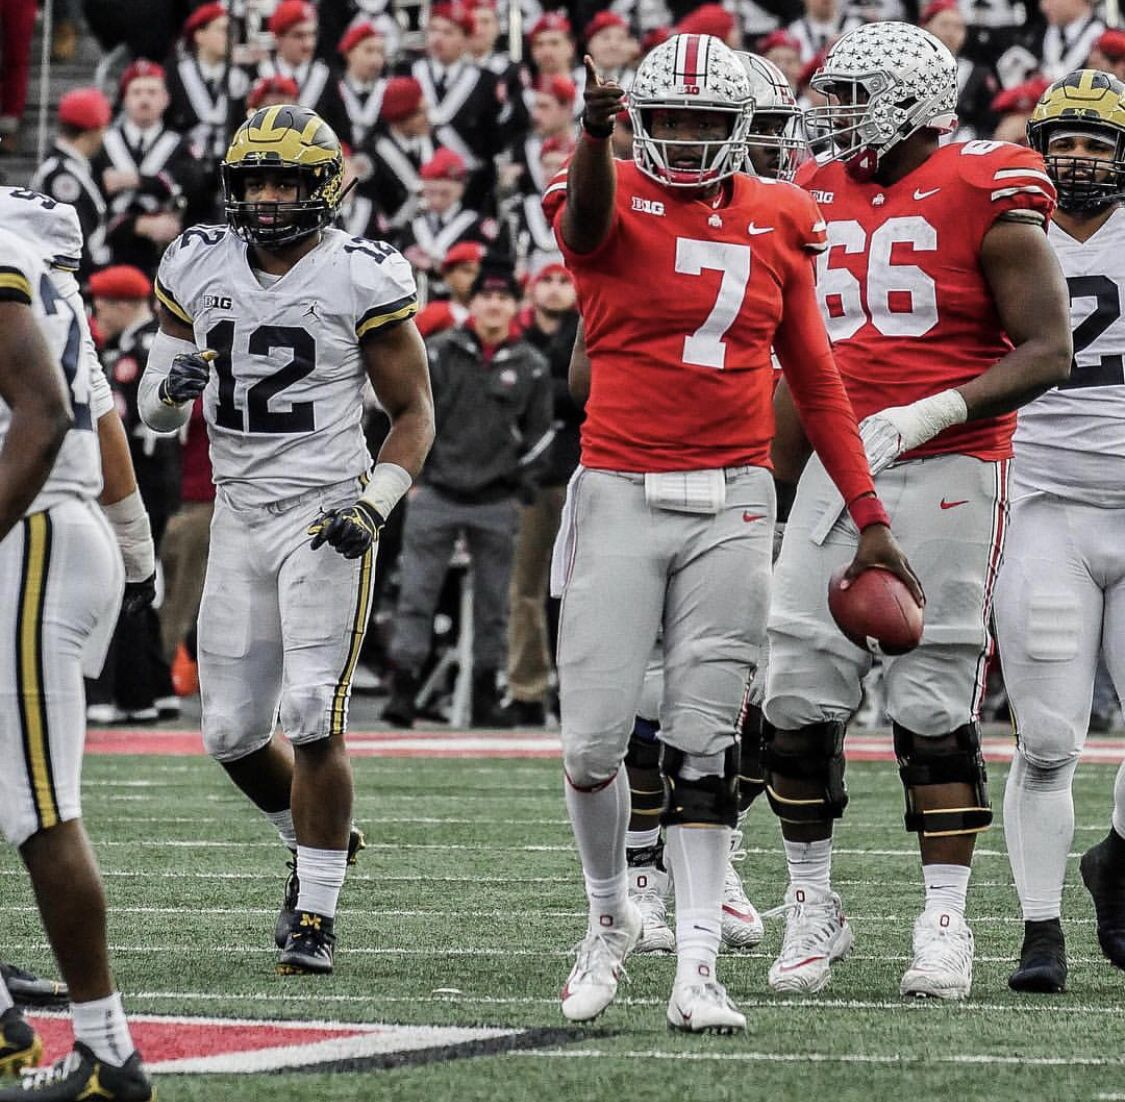 Pin By Luis On Ohio State Buckeyes